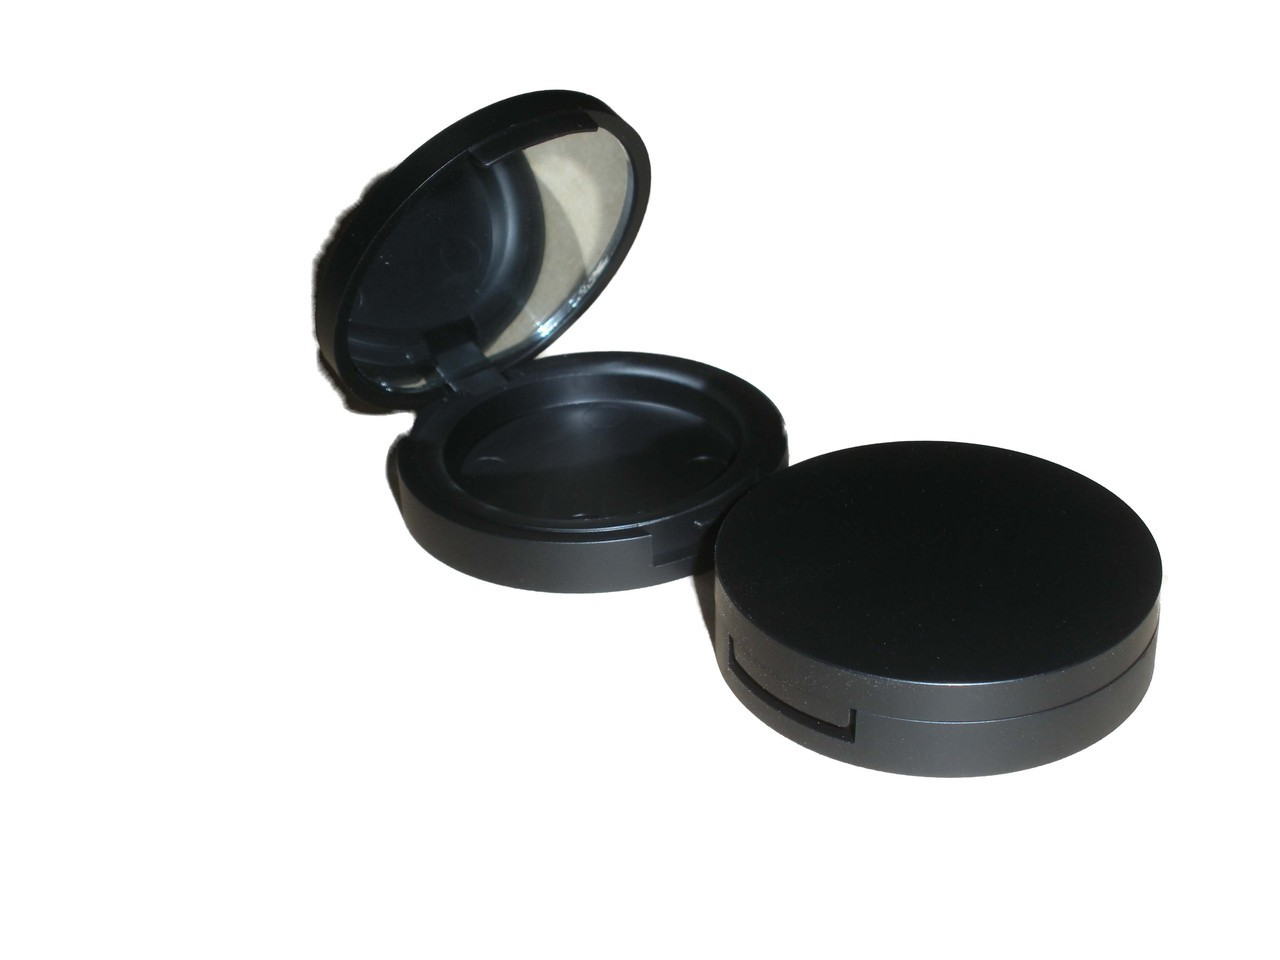 Round Matt Black Compact 29mm